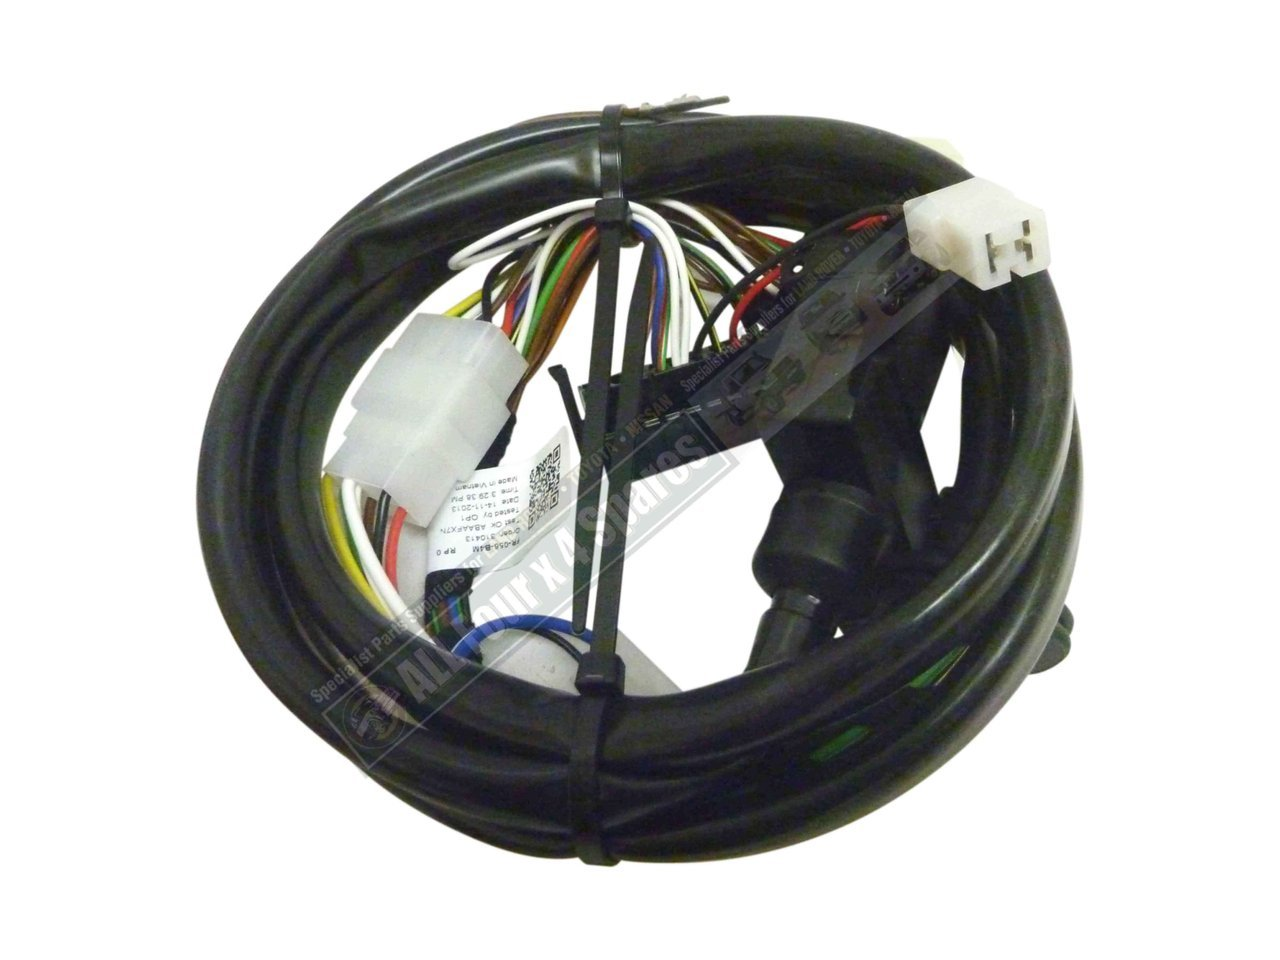 8 Pin Trailer Wiring Harness Video Milford Towbar Ford Territory 2004 On S 6 Plug Receiver Pins